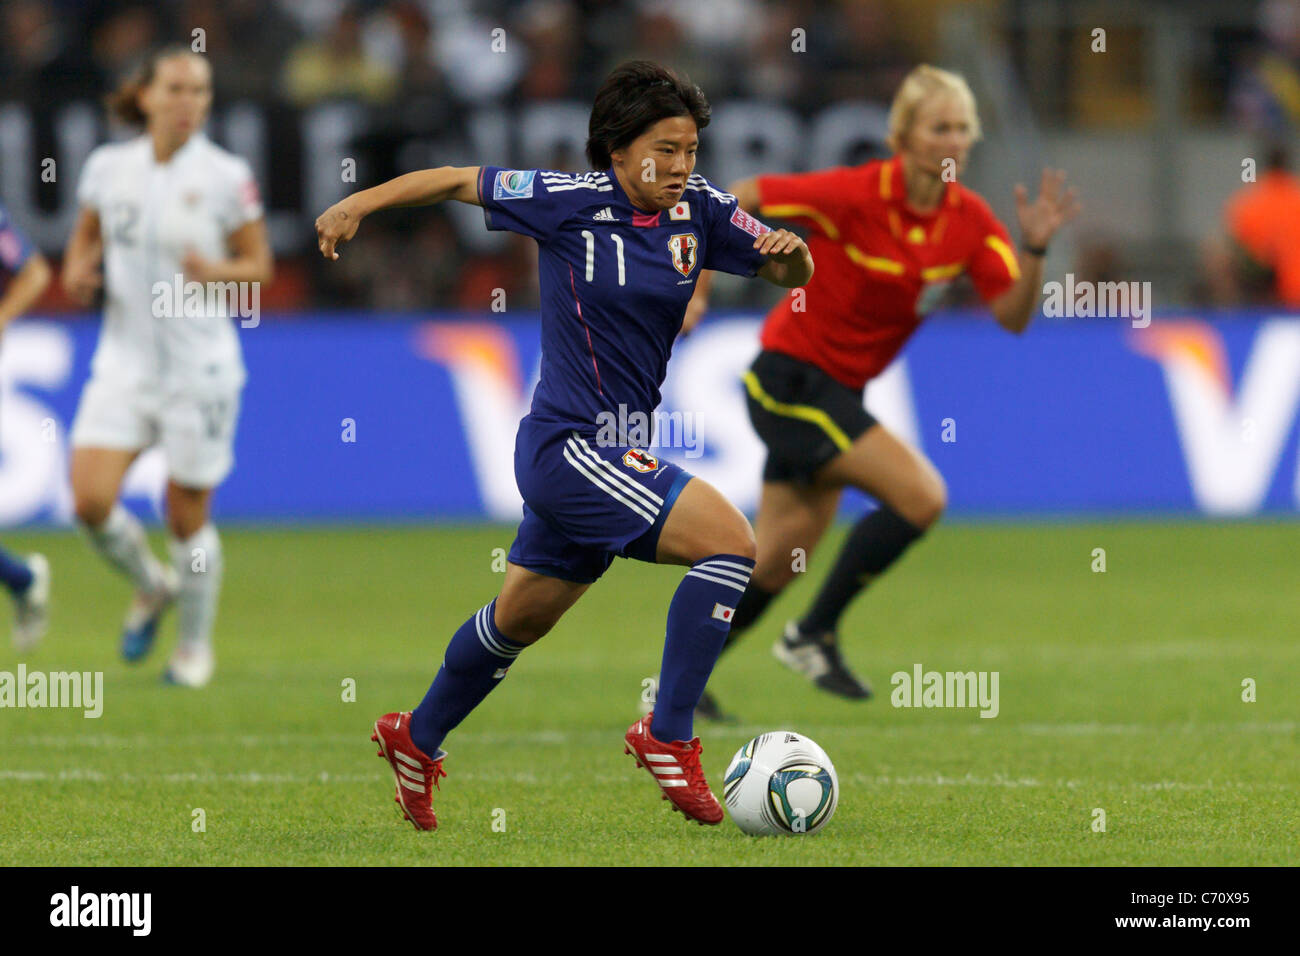 Shinobu Ohno of Japan races with the ball during the FIFA Women's World Cup final against the United States - Stock Image